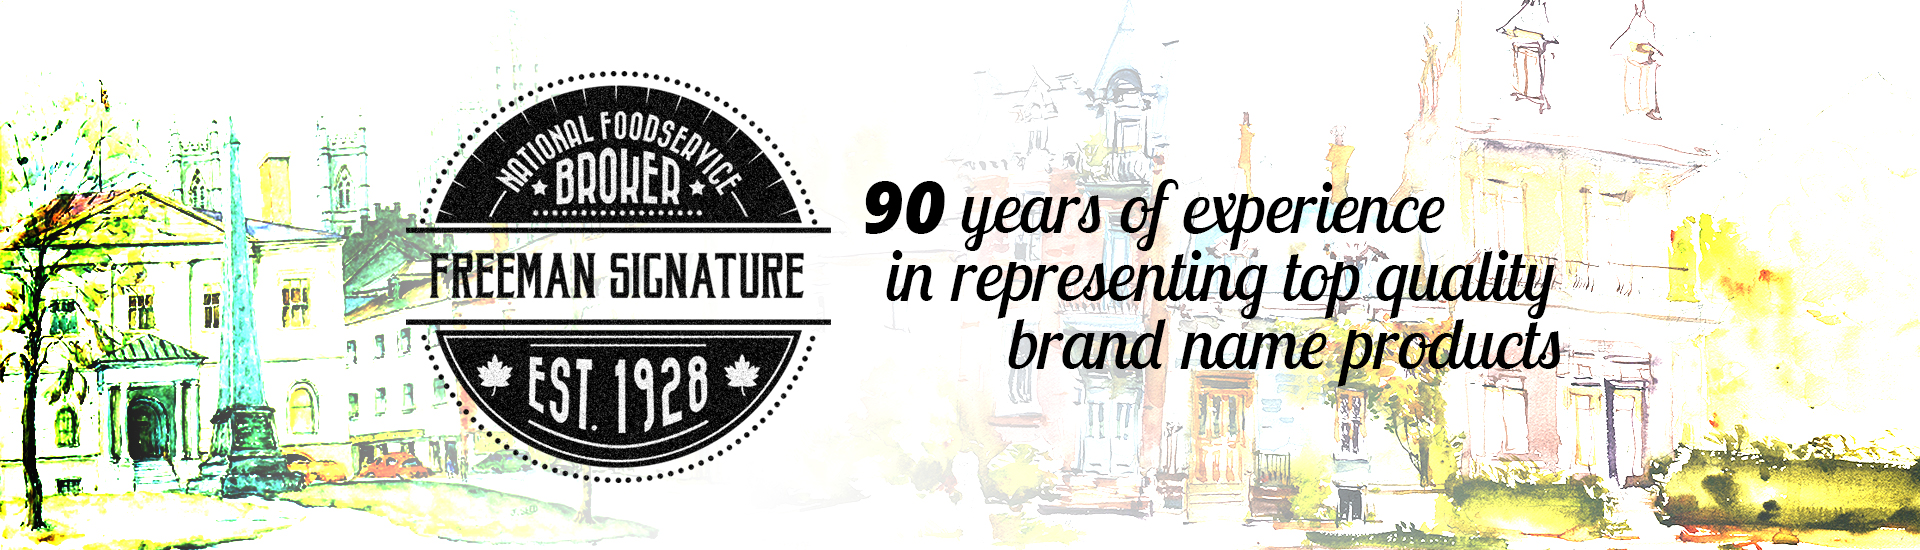 Freeman Signature Inc. - 90 years of experience